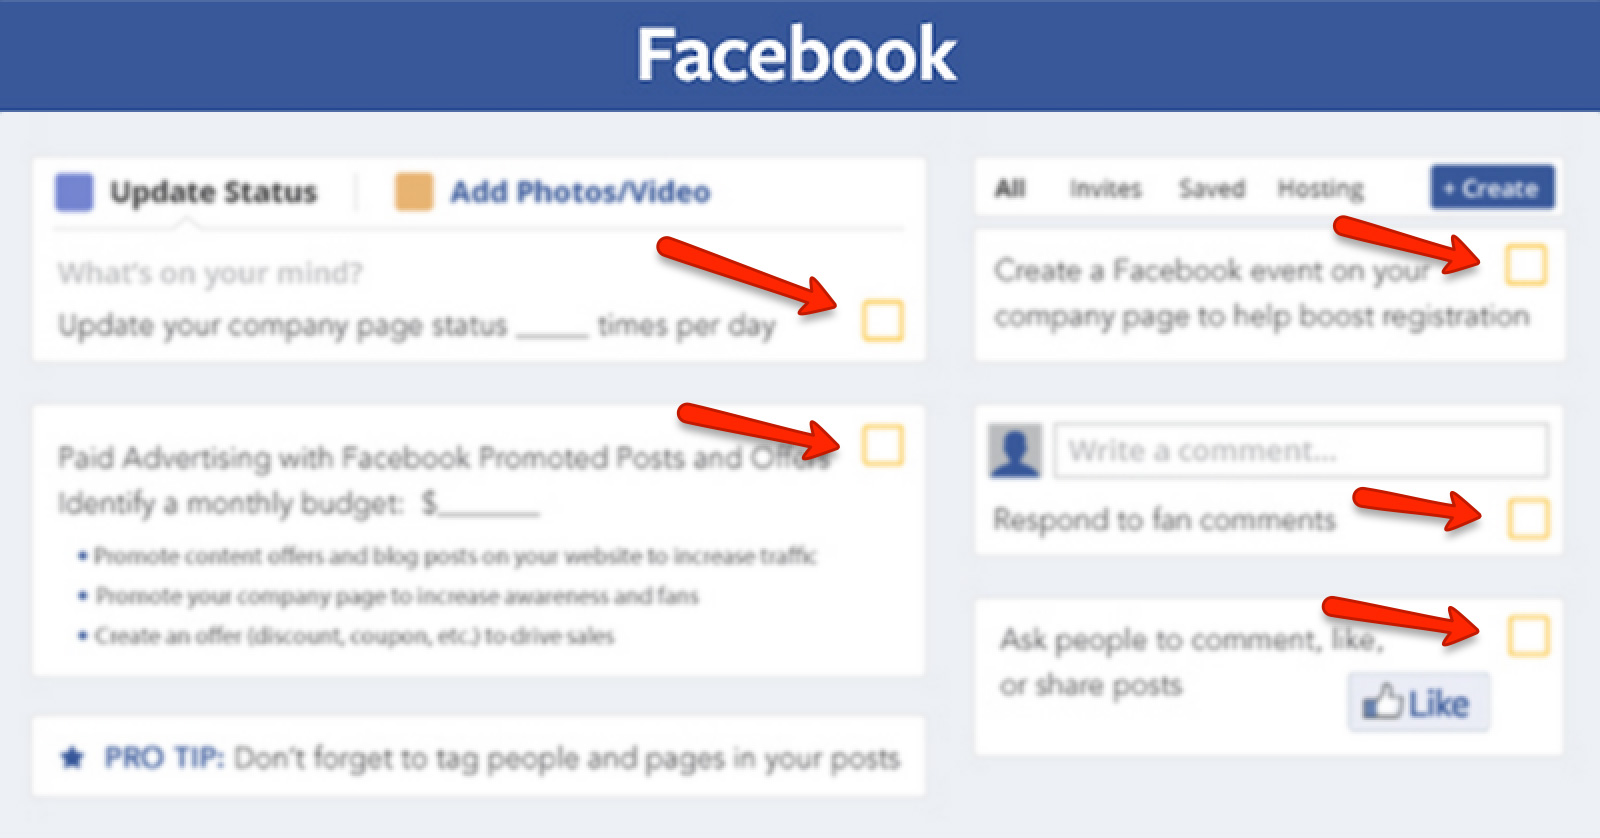 FINALLY_A_Checklist_for_Social_Media_Marketing_that_Actually_Helps-ls